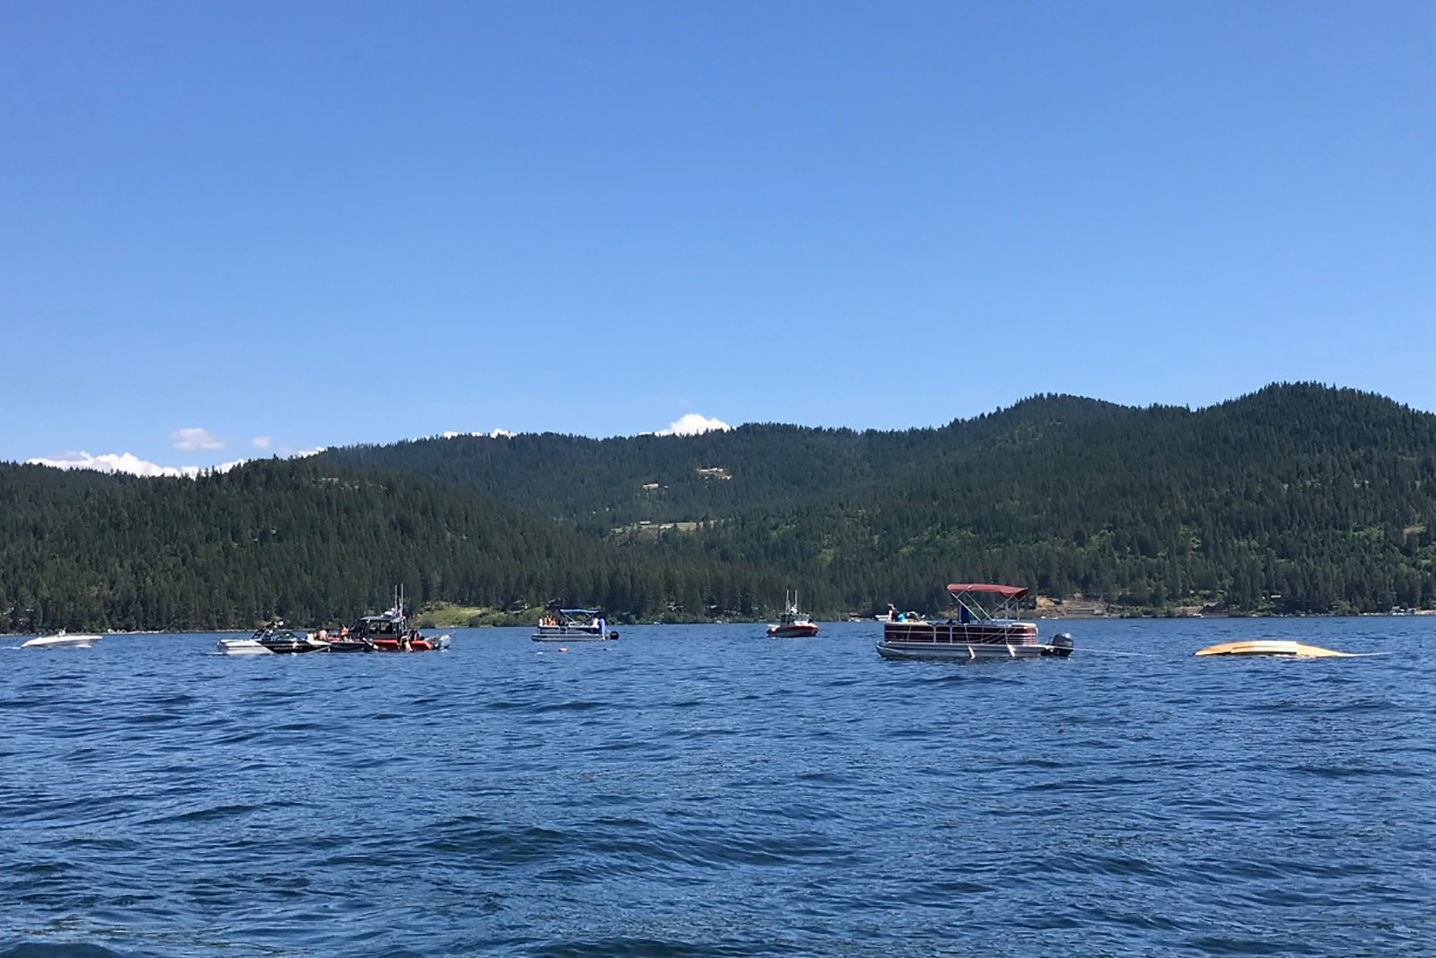 Boaters flag down authorities to a crashed seaplane near Powderhorn Bay on Lake Coeur d'Alene on July 5, 2020,